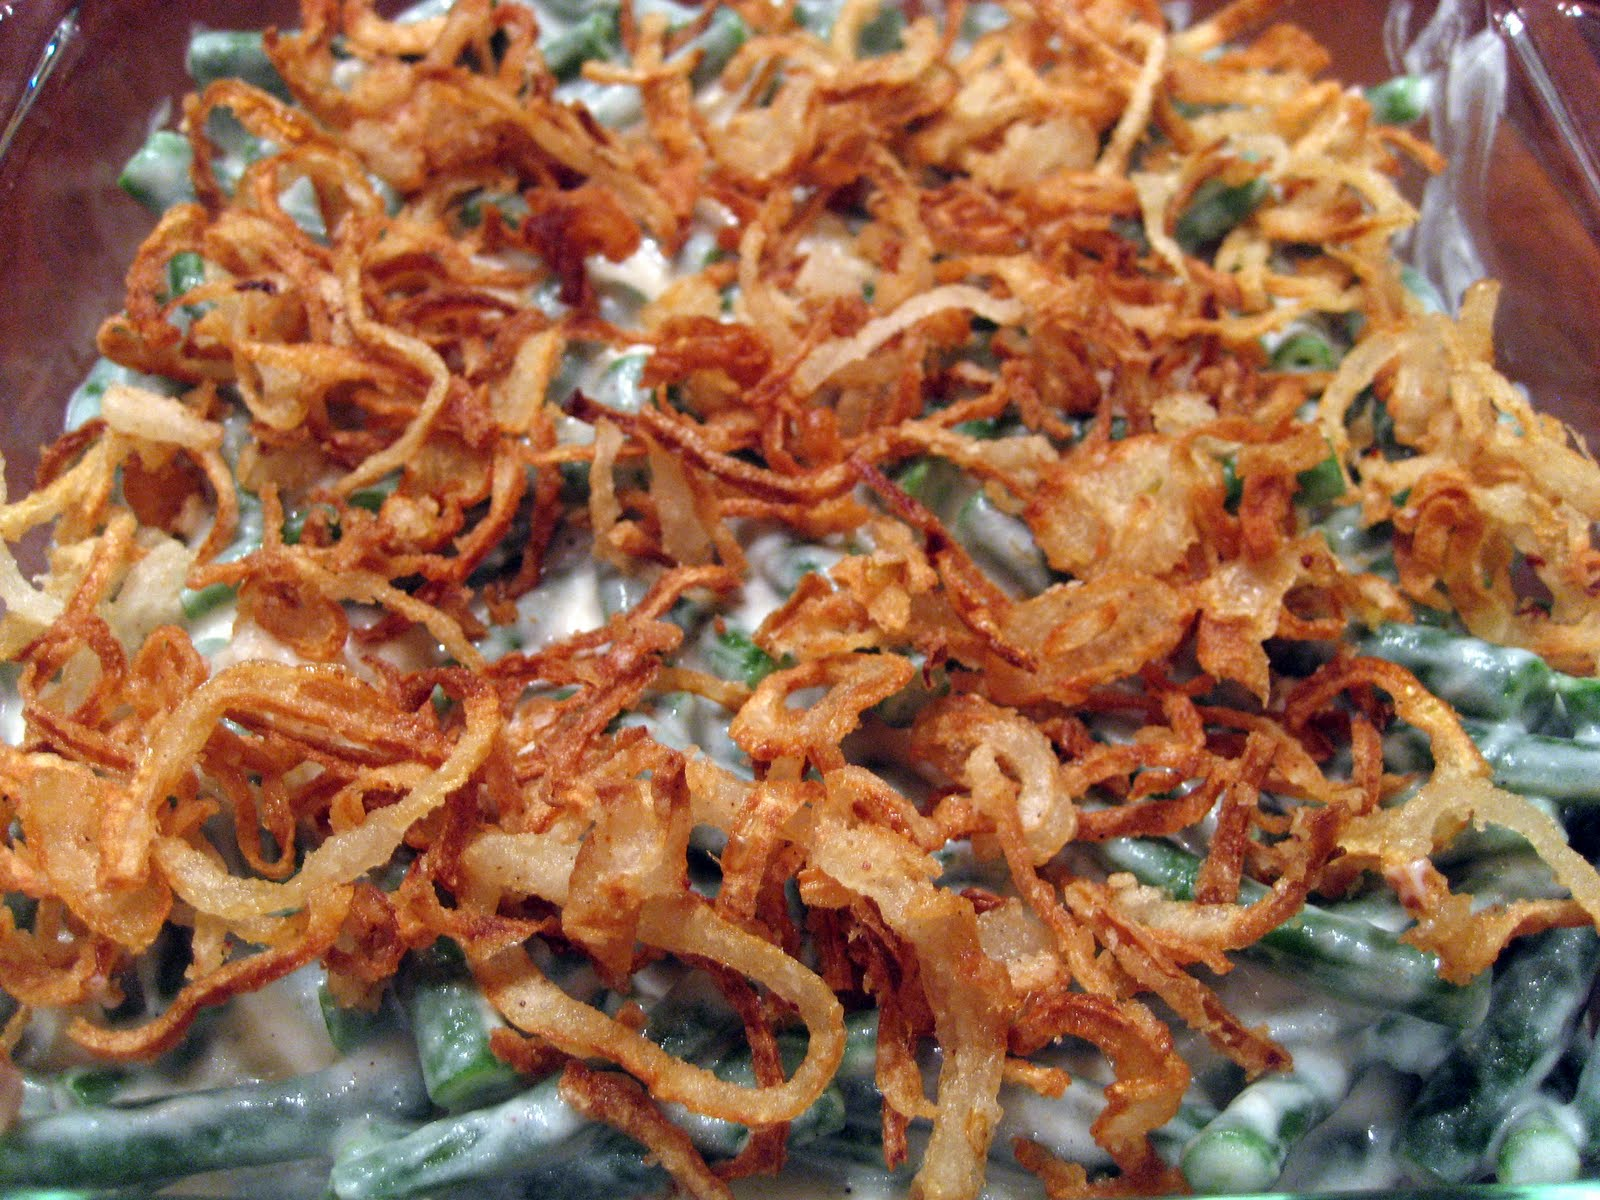 Top with the rest of the fried onions and bake for another 5 minutes.